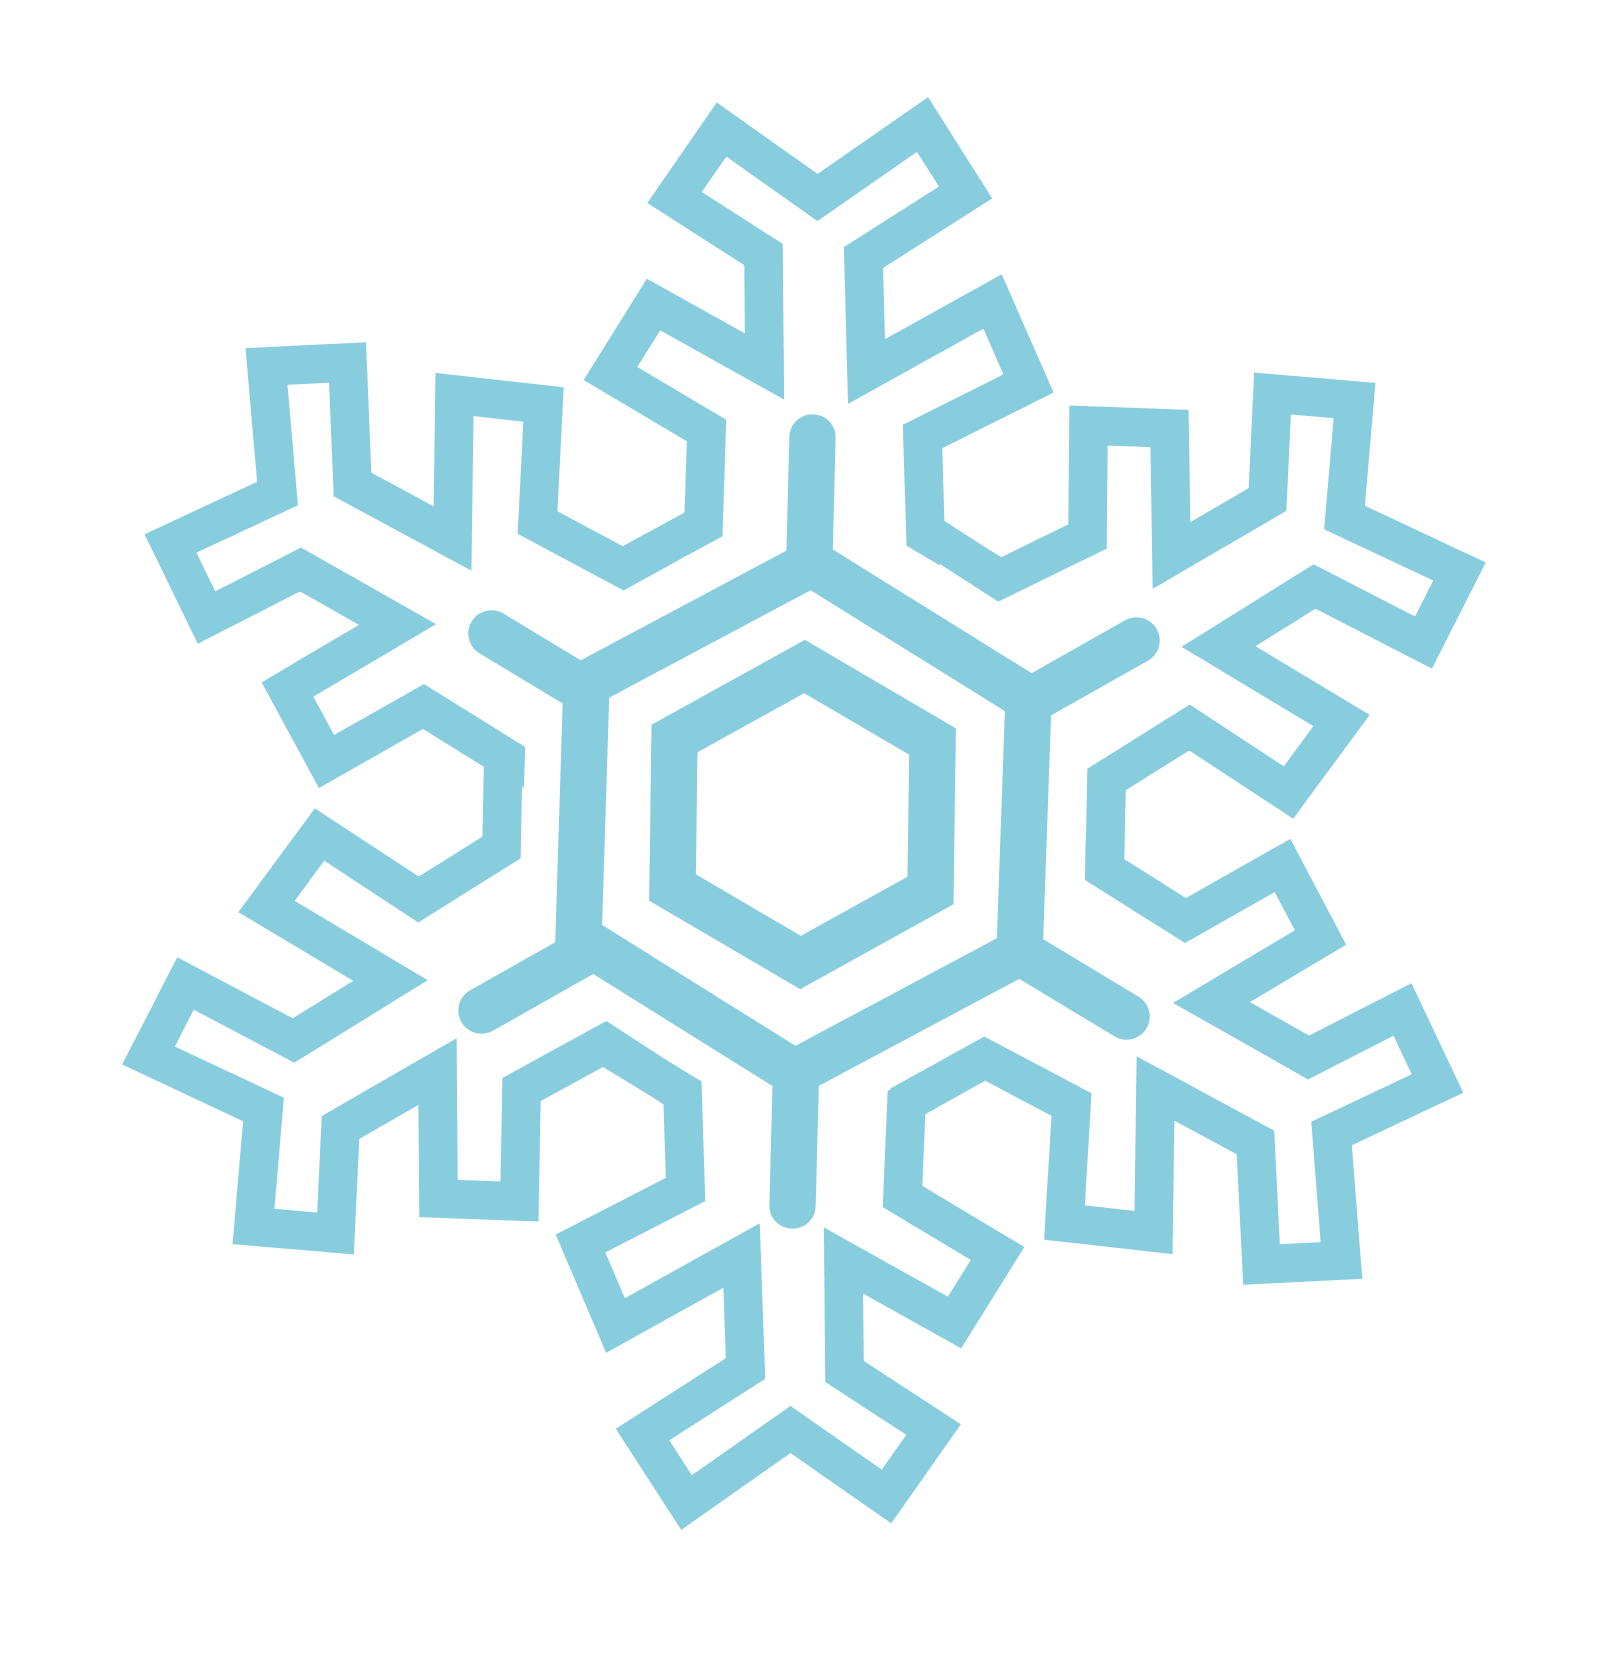 Snowfall vector. Snowflake google search xmas